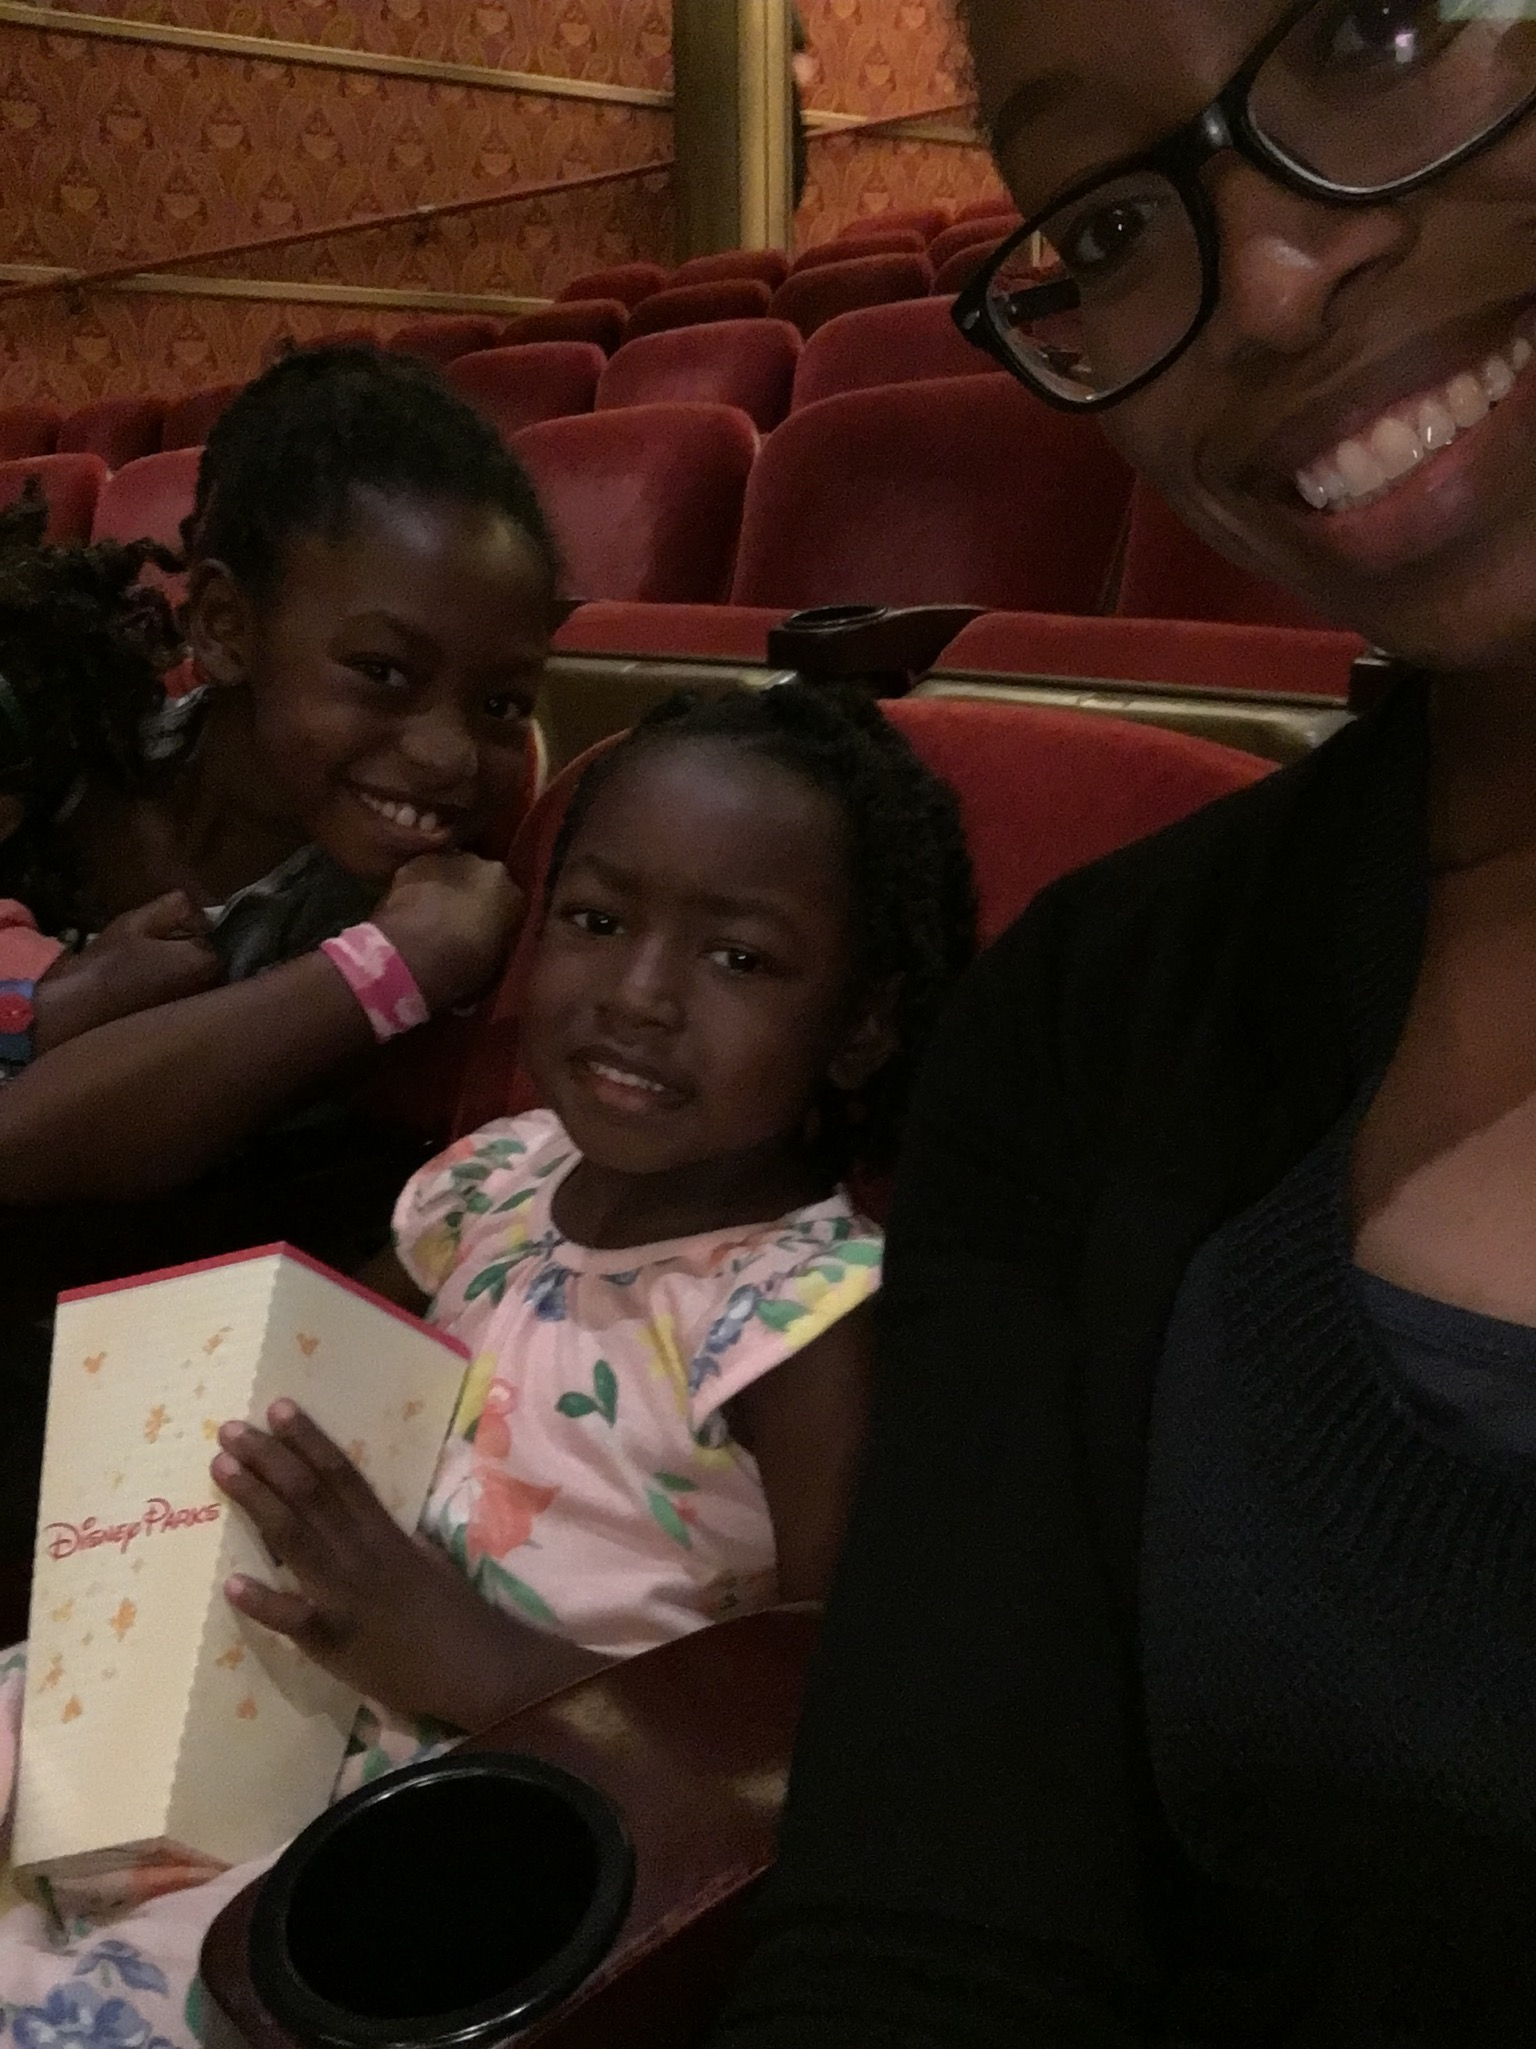 Smiles (and PJs) in the evening show at the Walt Disney Theatre